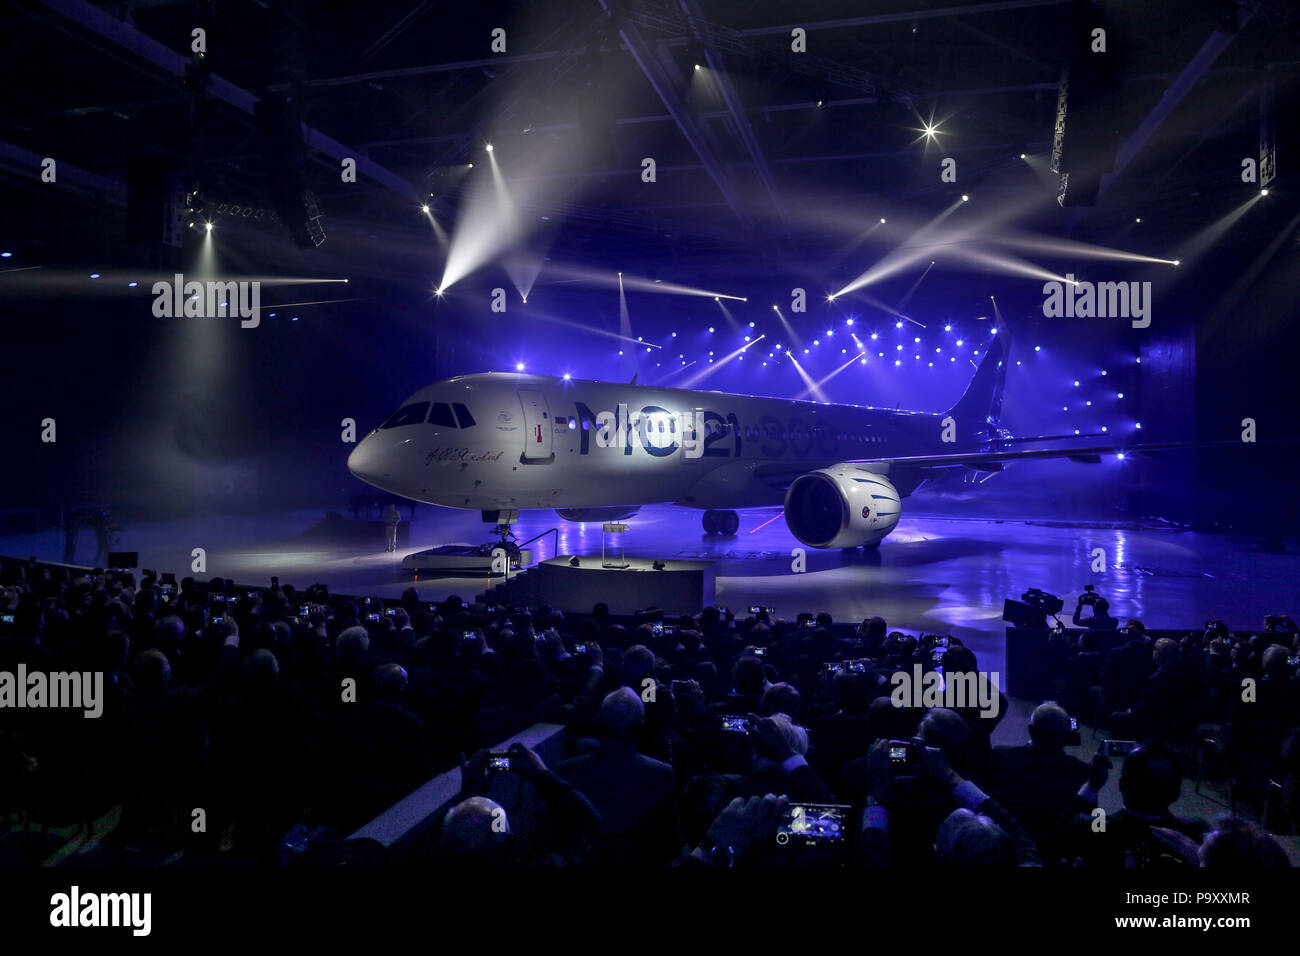 8th June 2016. The first assembled Irkut MC-21-300 civil jet airplane rolled out at Irkutsk Aviation Plant, Russia. - Stock Image